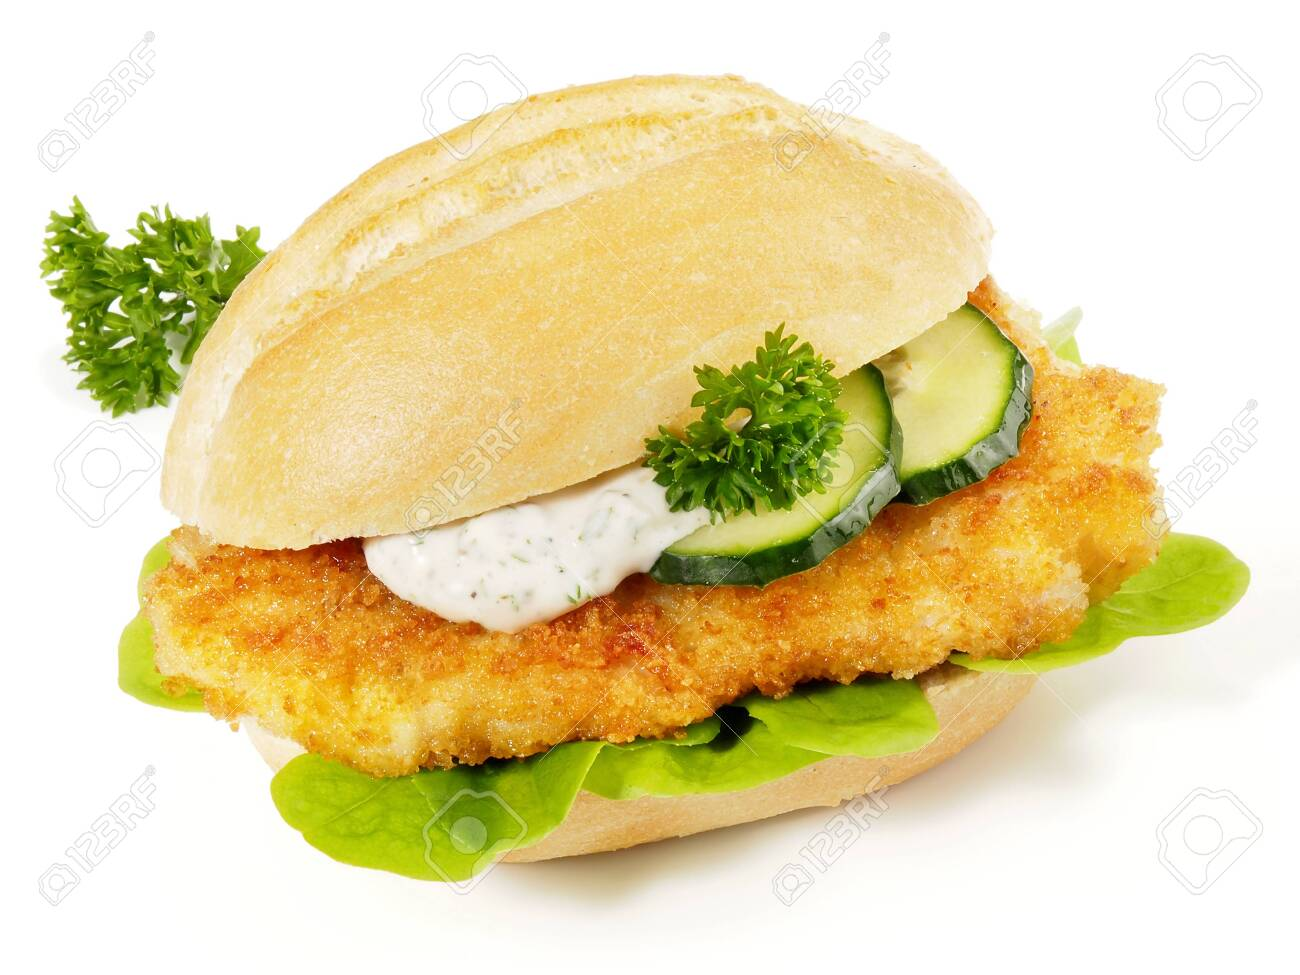 Breaded Schnitzel in a Bun with Sauce and Cucumber - 122000400